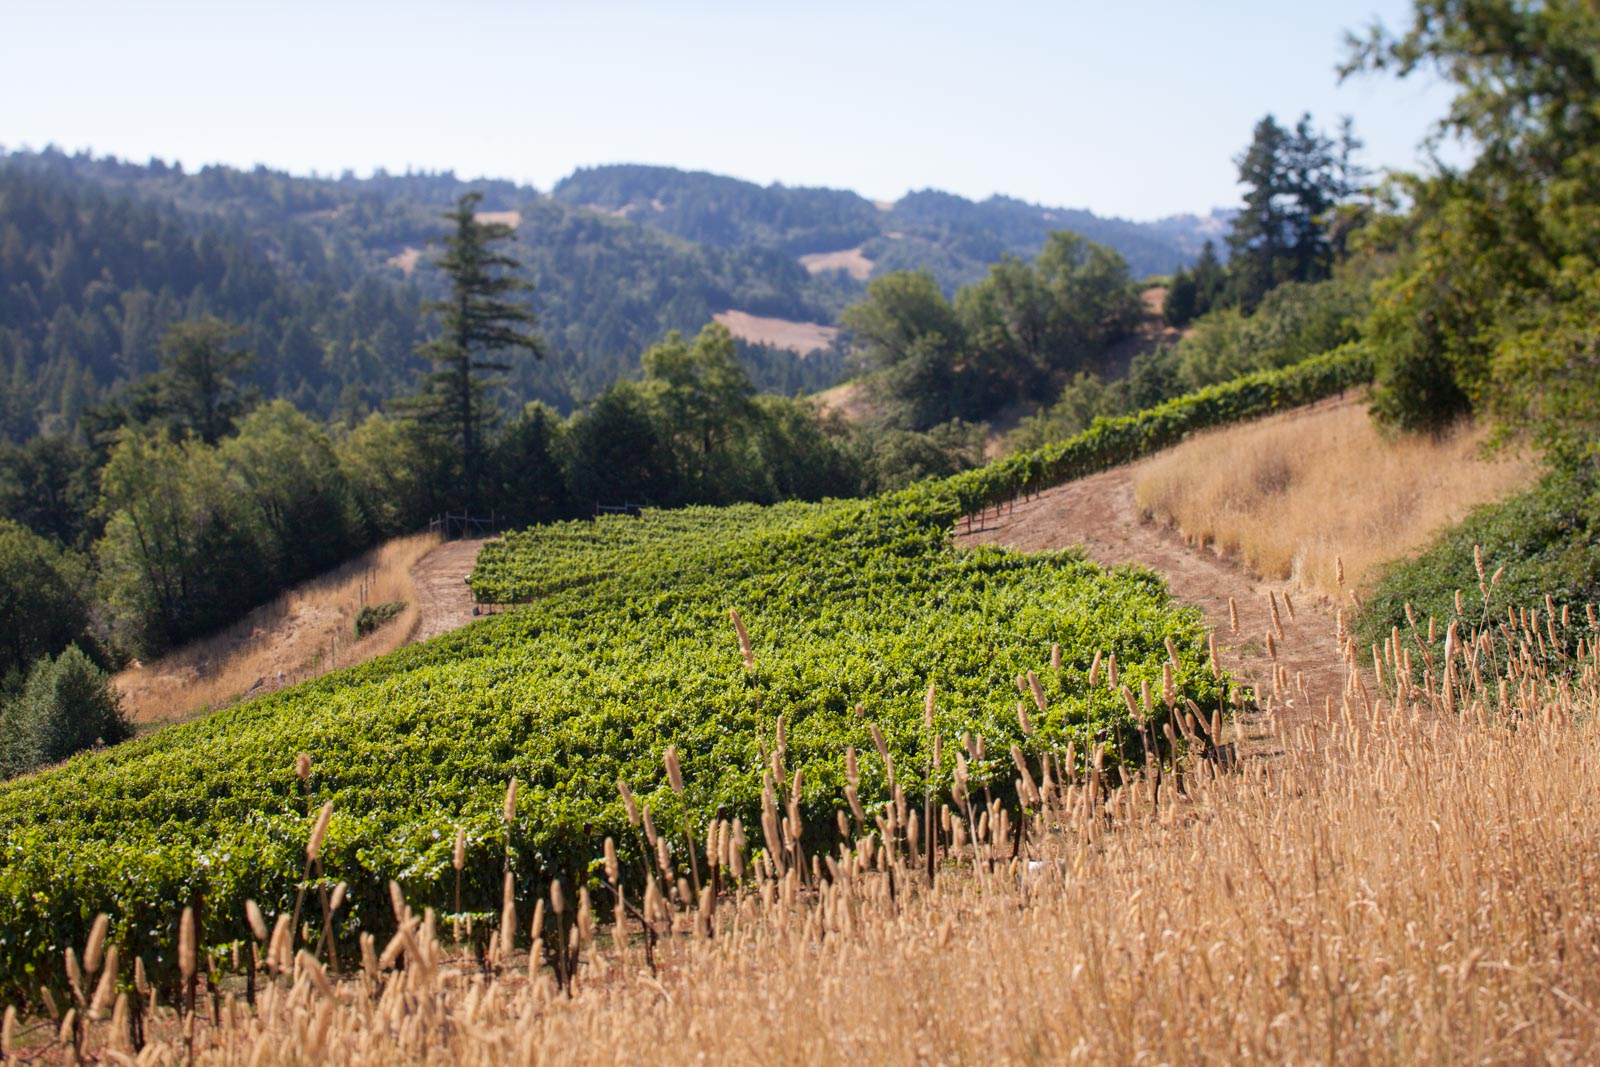 The lower stretches of the Fort Ross Vineyard, Sonoma Coast, Seaview, Jenner, California. ©Kevin Day / Opening a Bottle